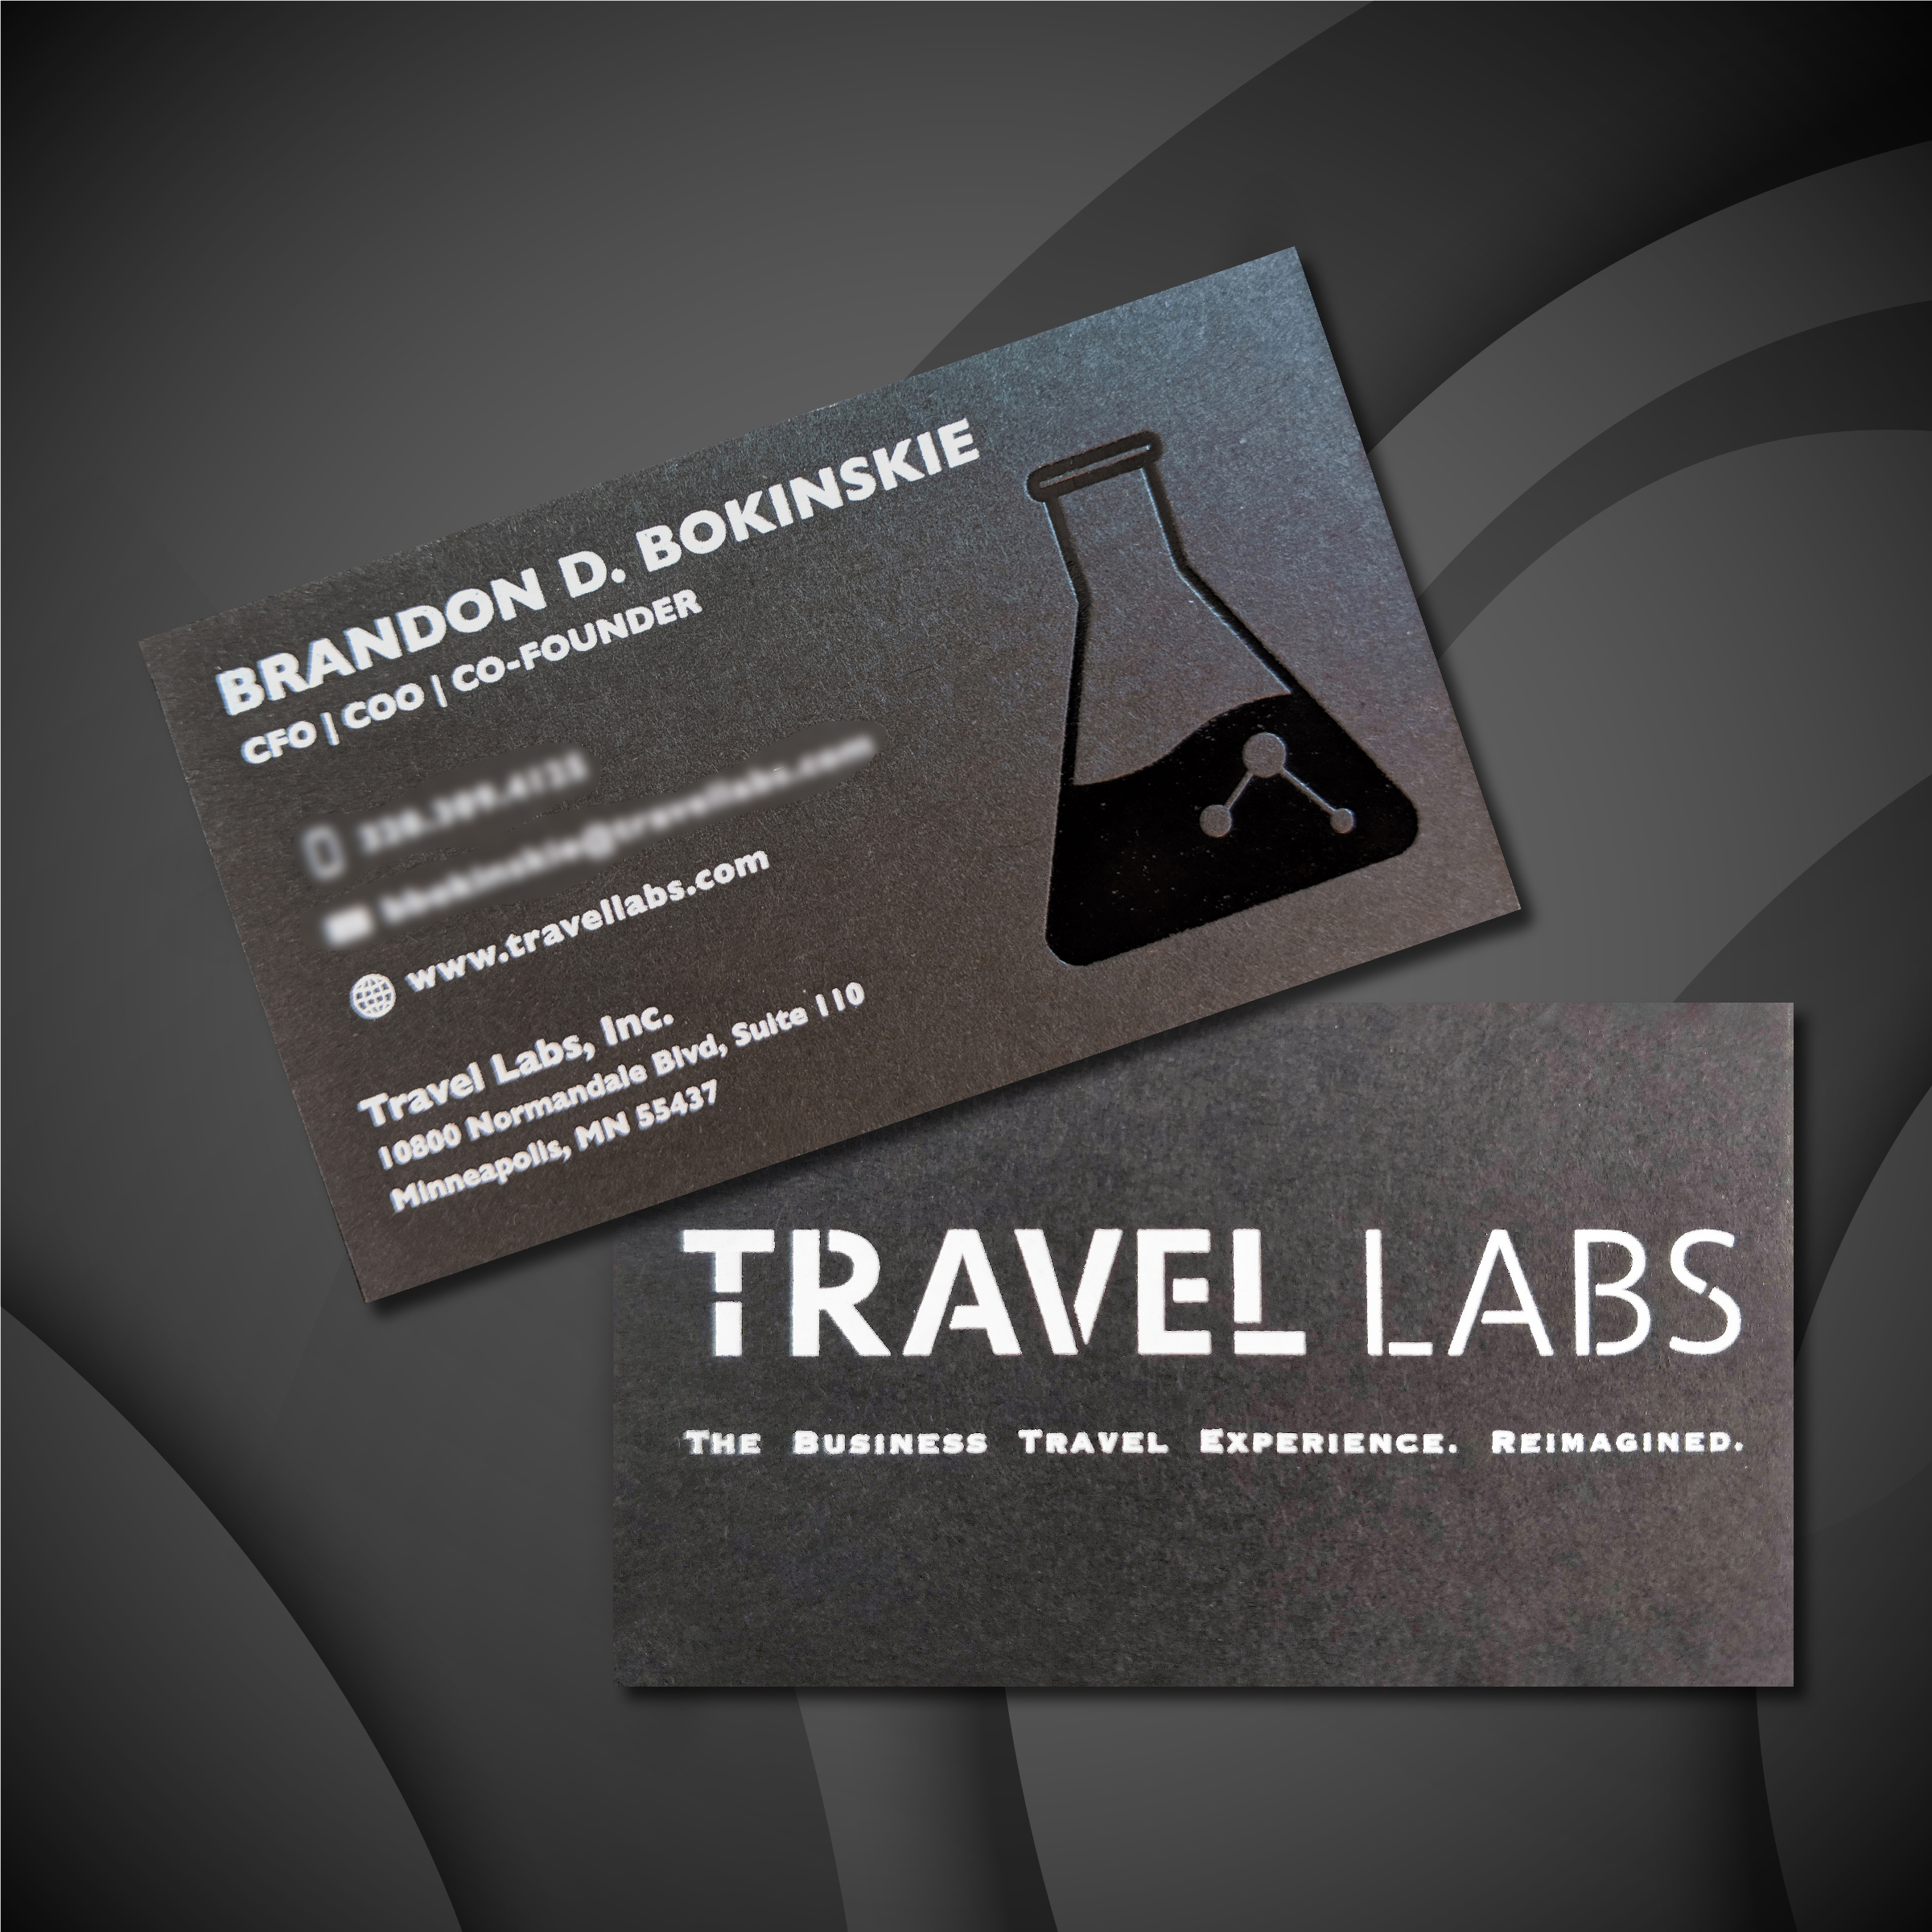 Travel_Labs_Business_Card-01